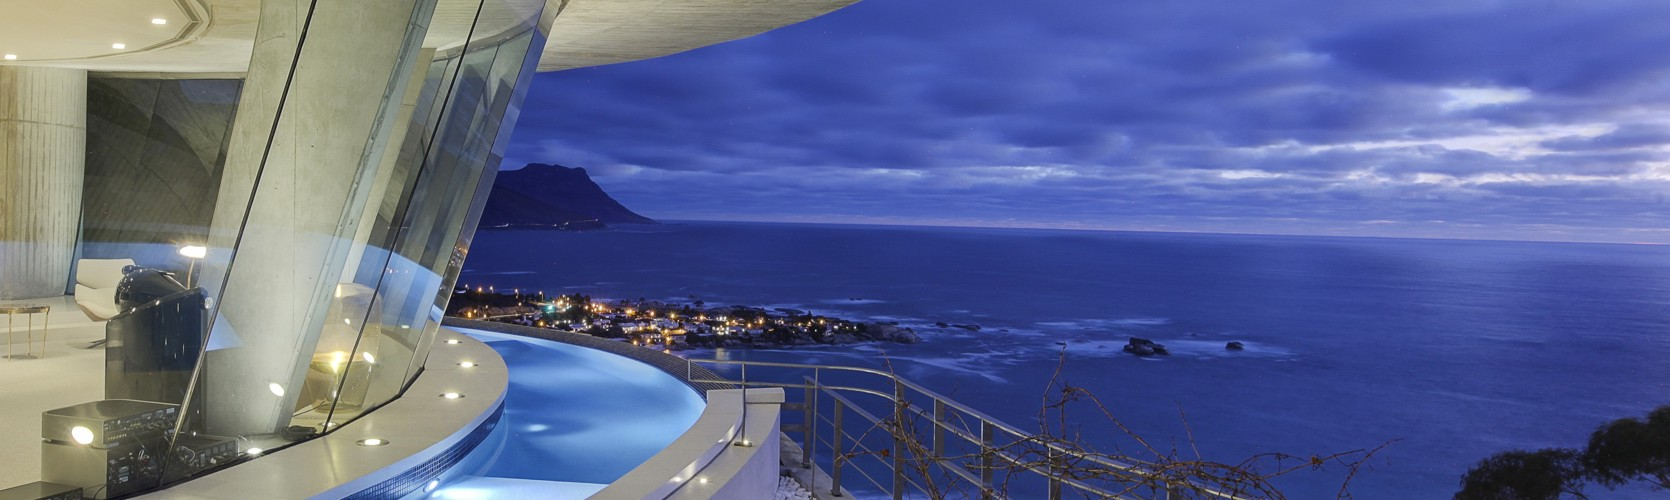 Pengilly House: Luxury Home Rental, CLifton, Cape Town, South Africa